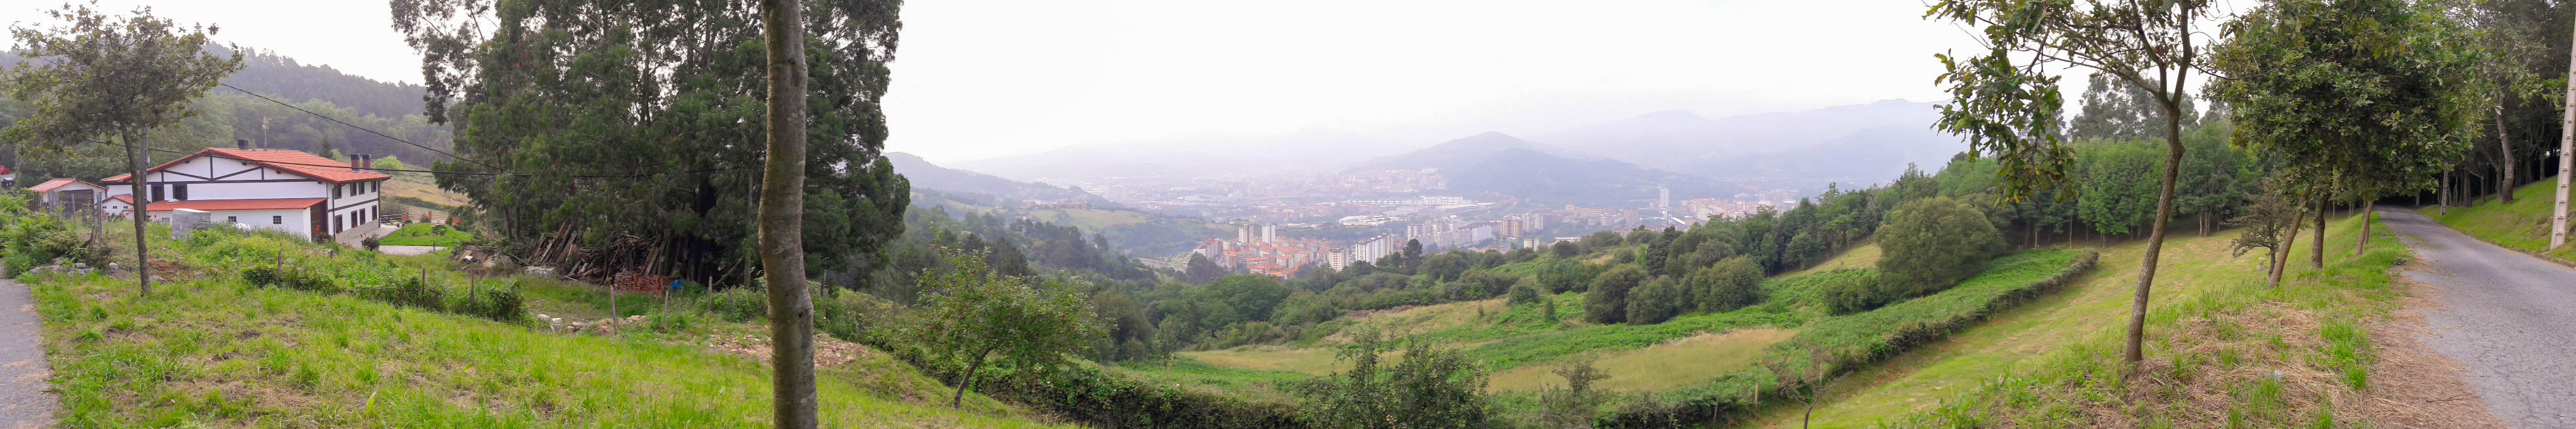 Misty morning view over Bilbao